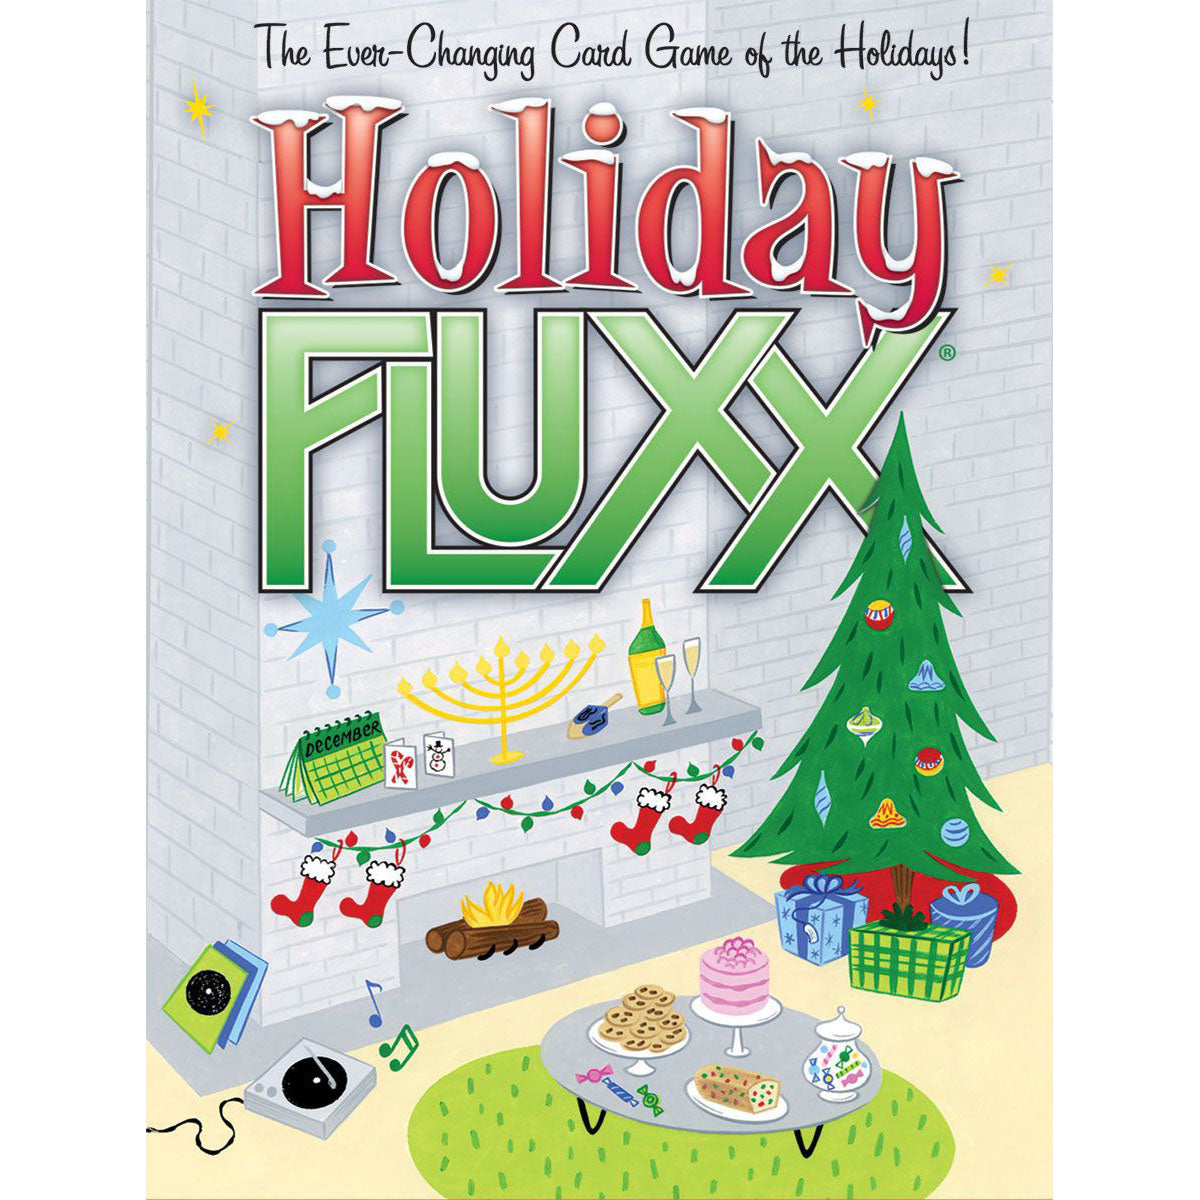 Holiday Fluxx